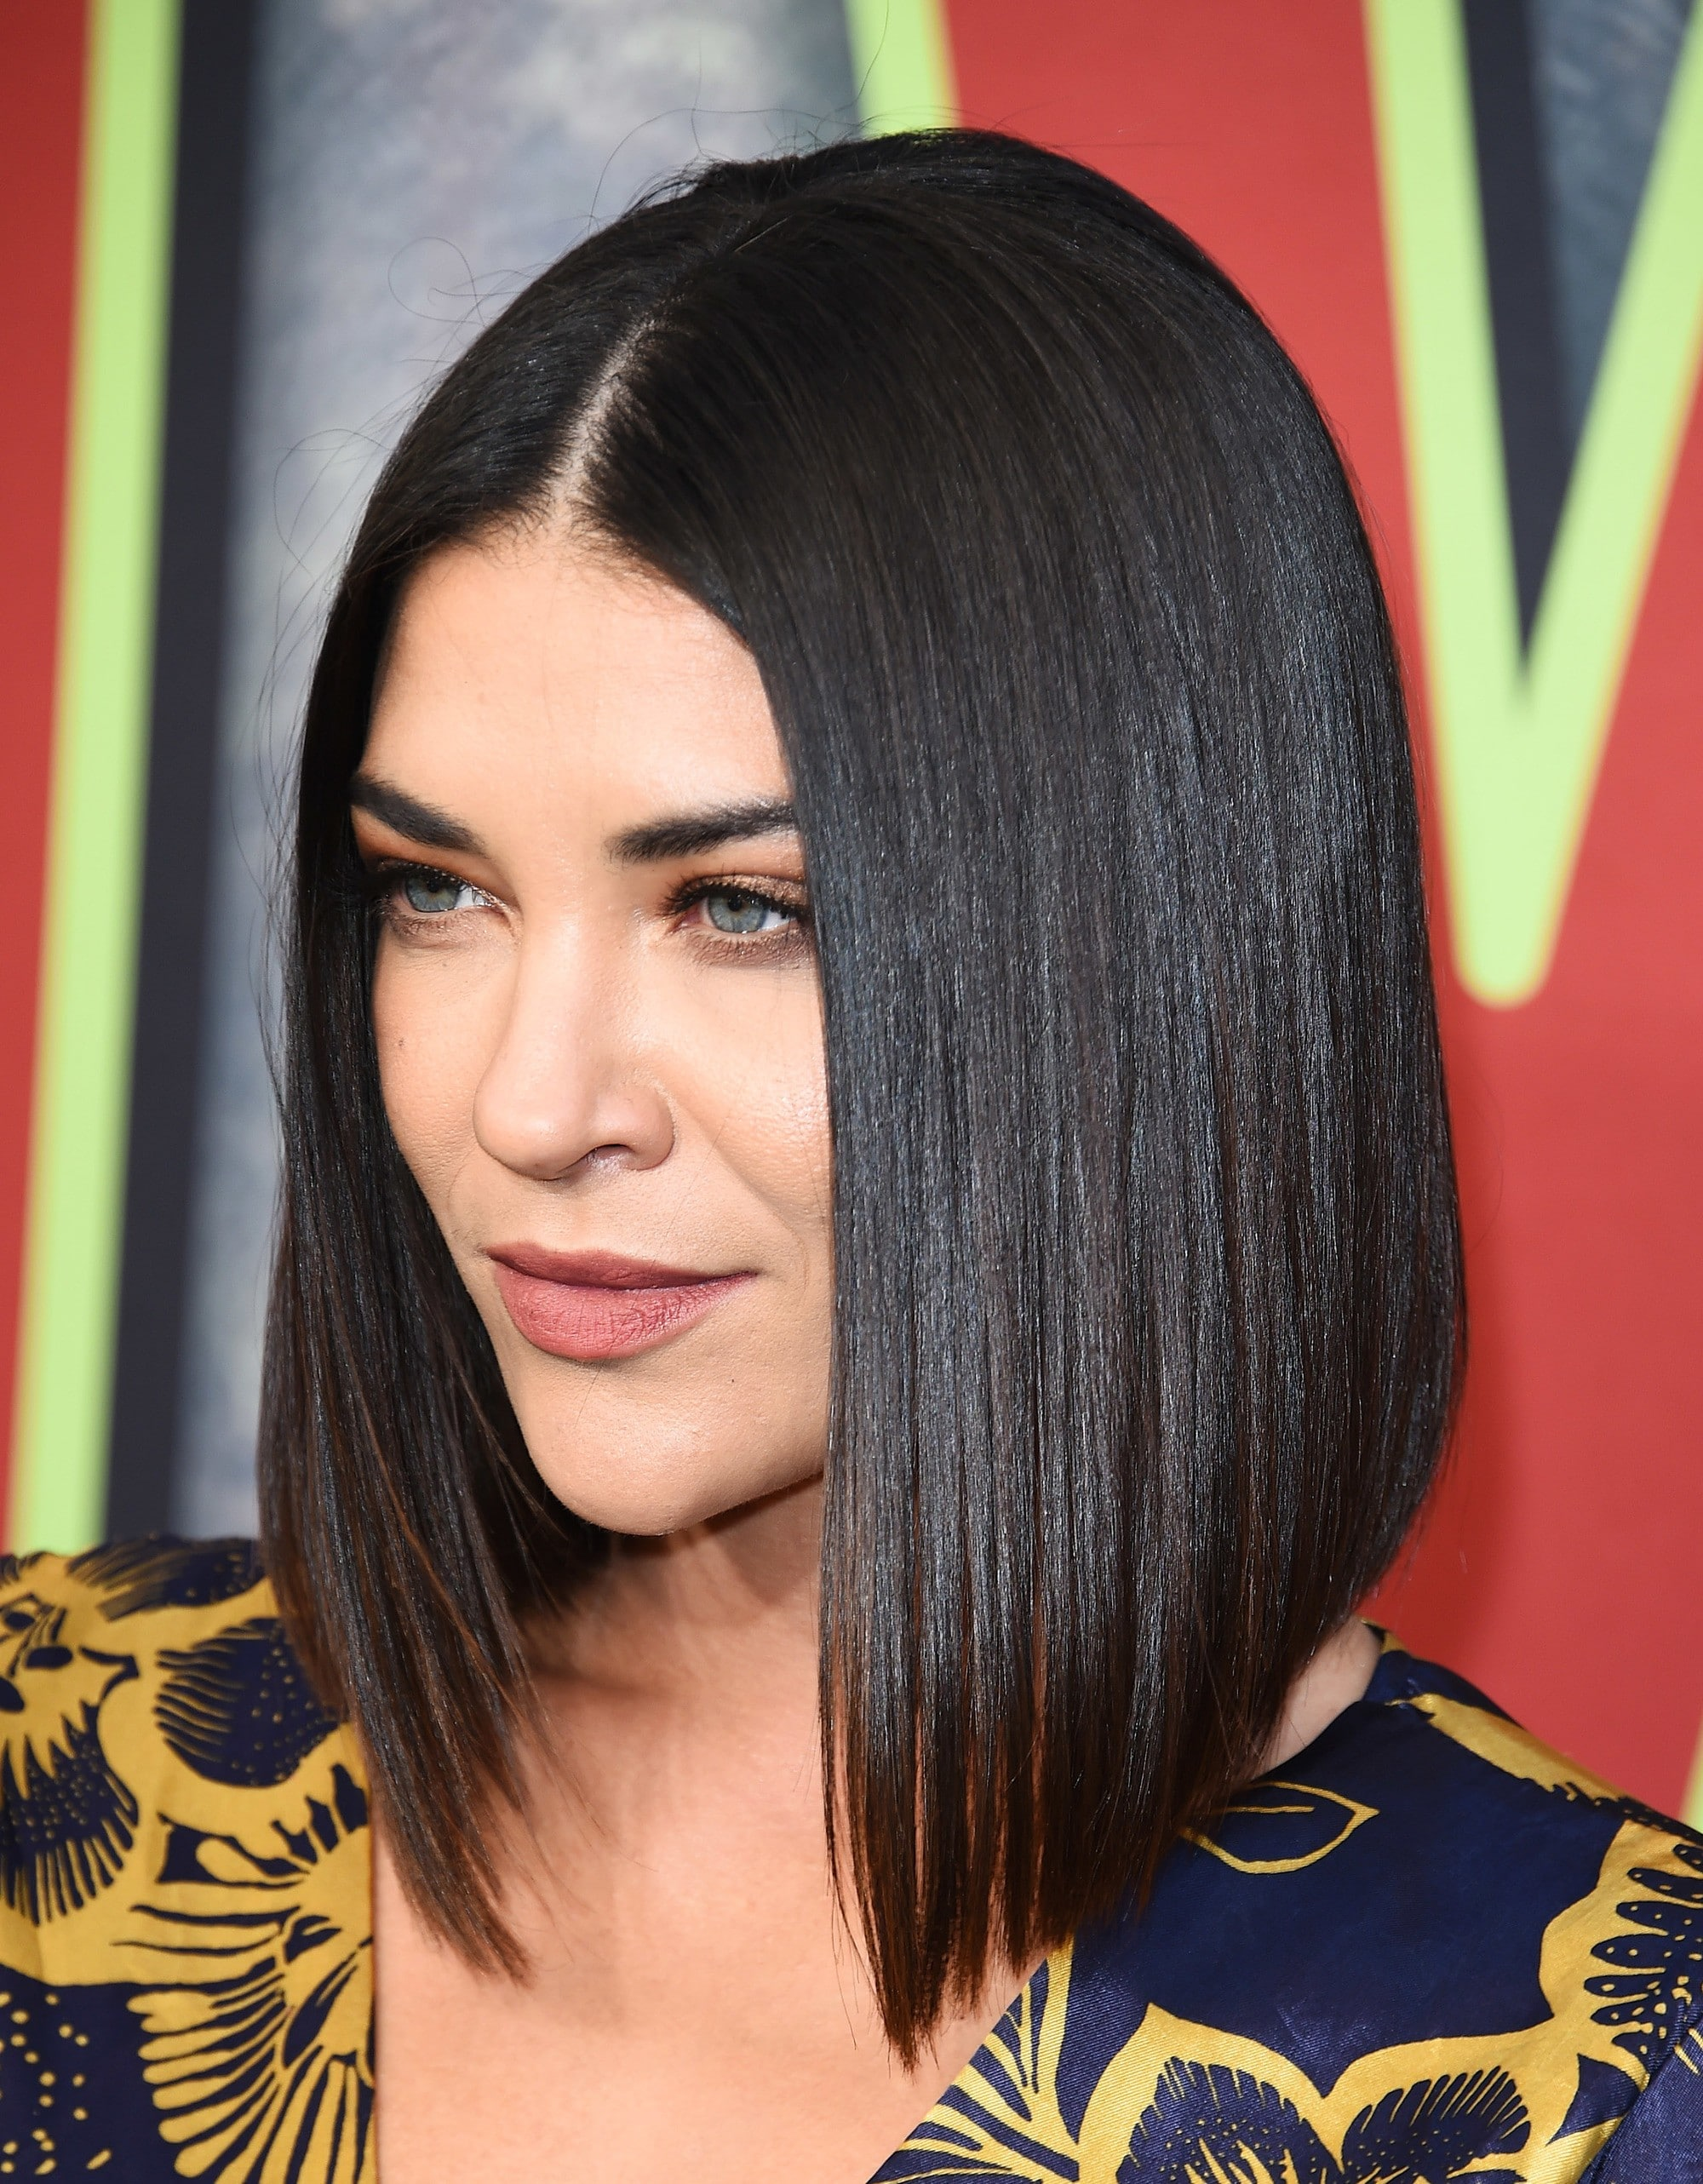 Angled bob: Close-up of Jessica Szohr with a dark brunette sharp angled bob, wearing a blue and yellow print dress